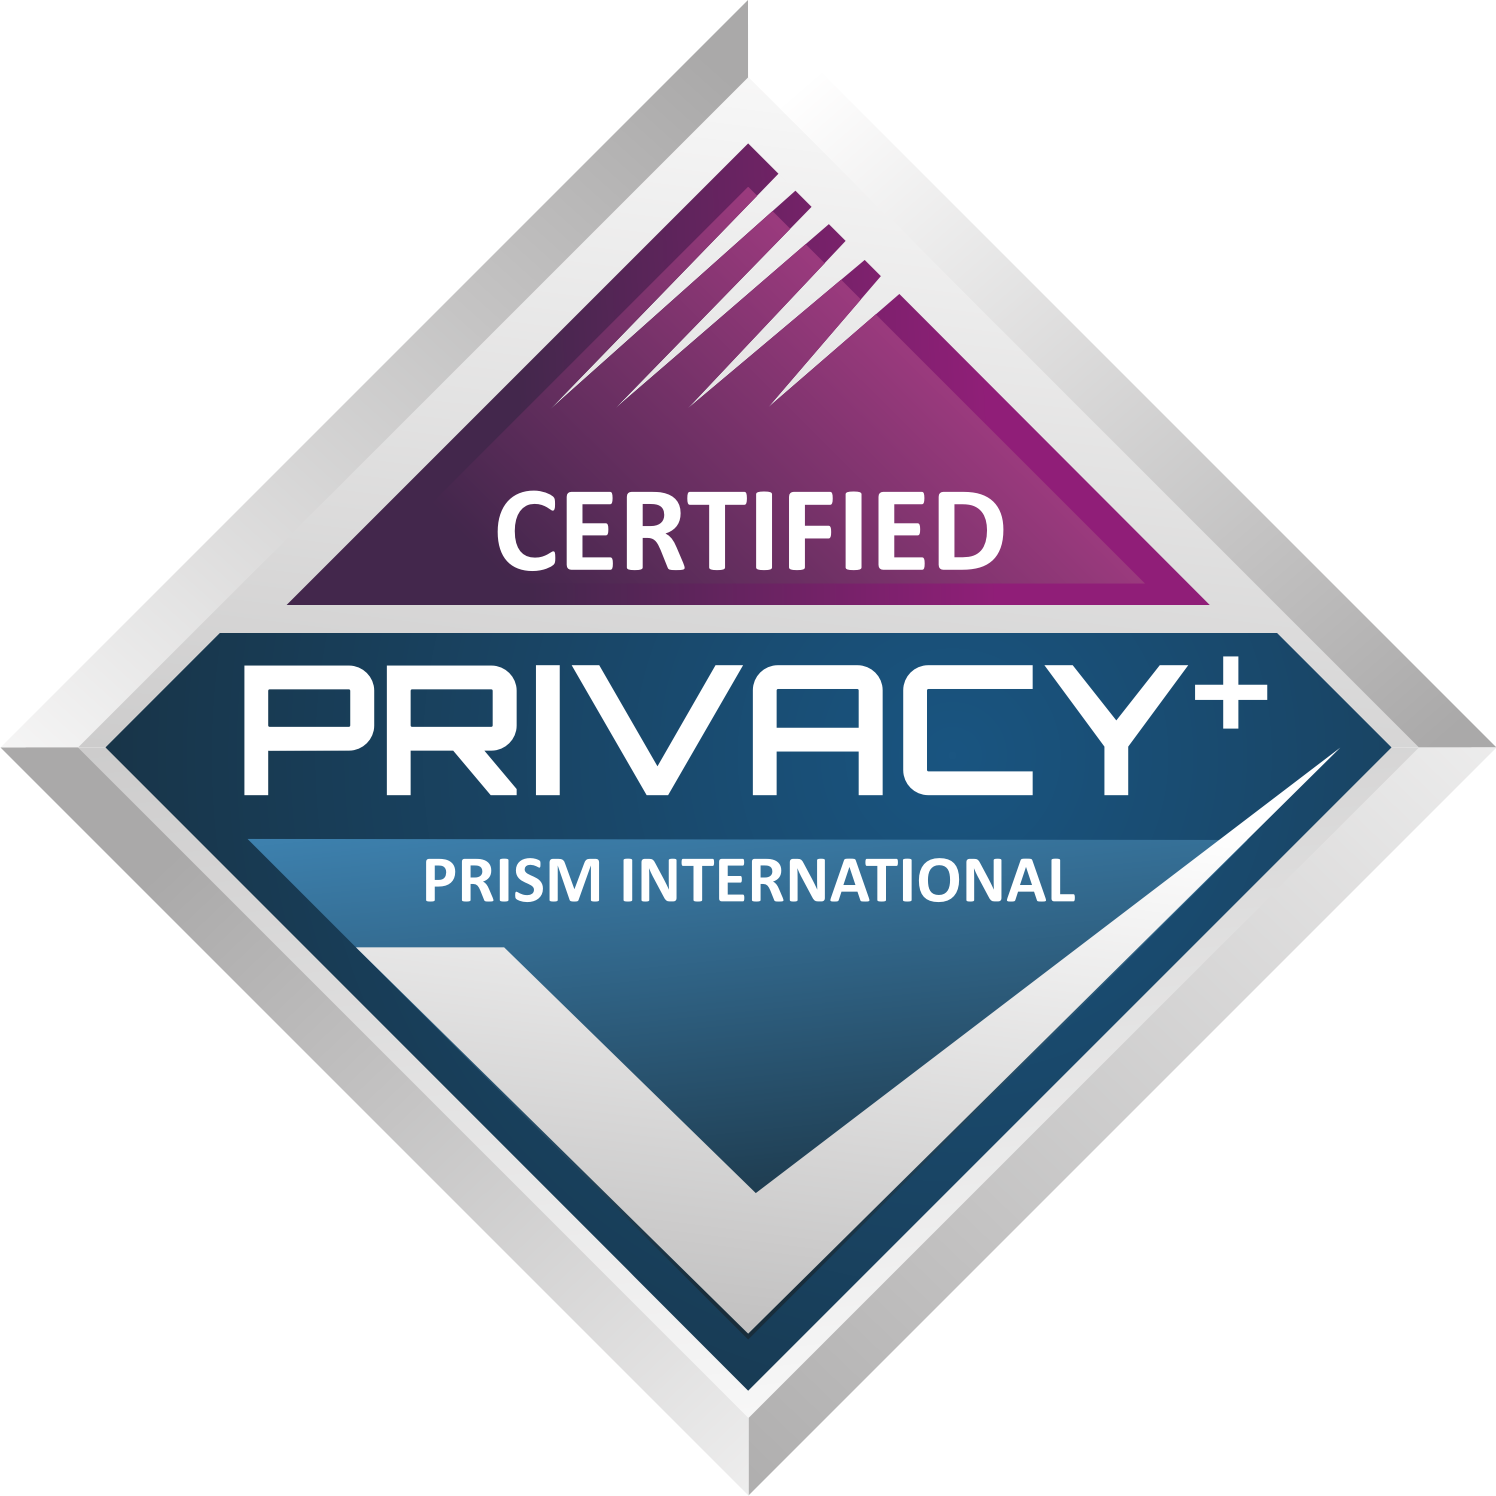 Certified-Privacy-color